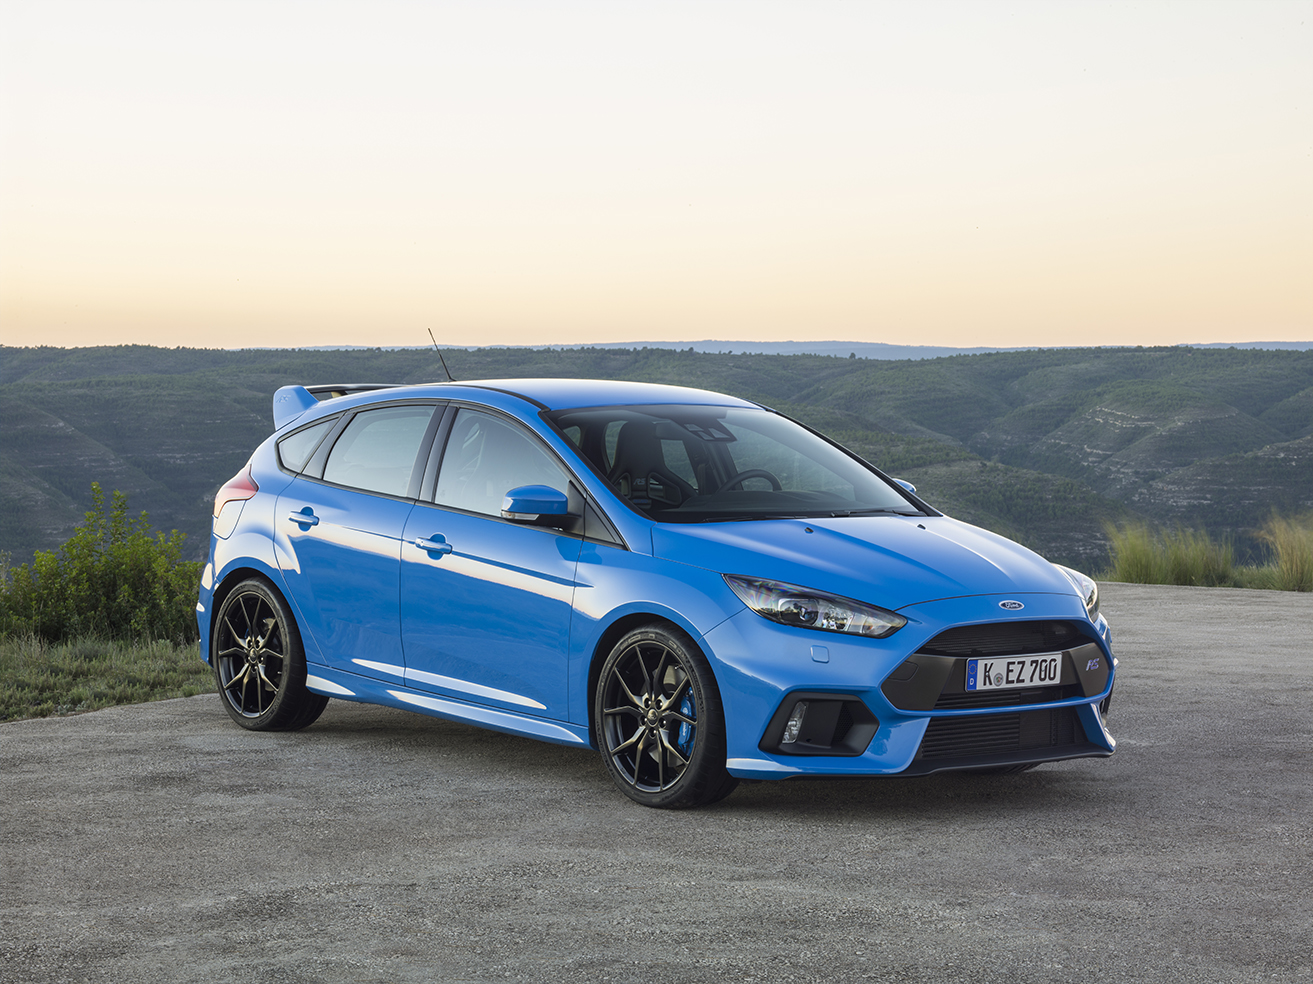 Ford focus rs 2016 car tuning